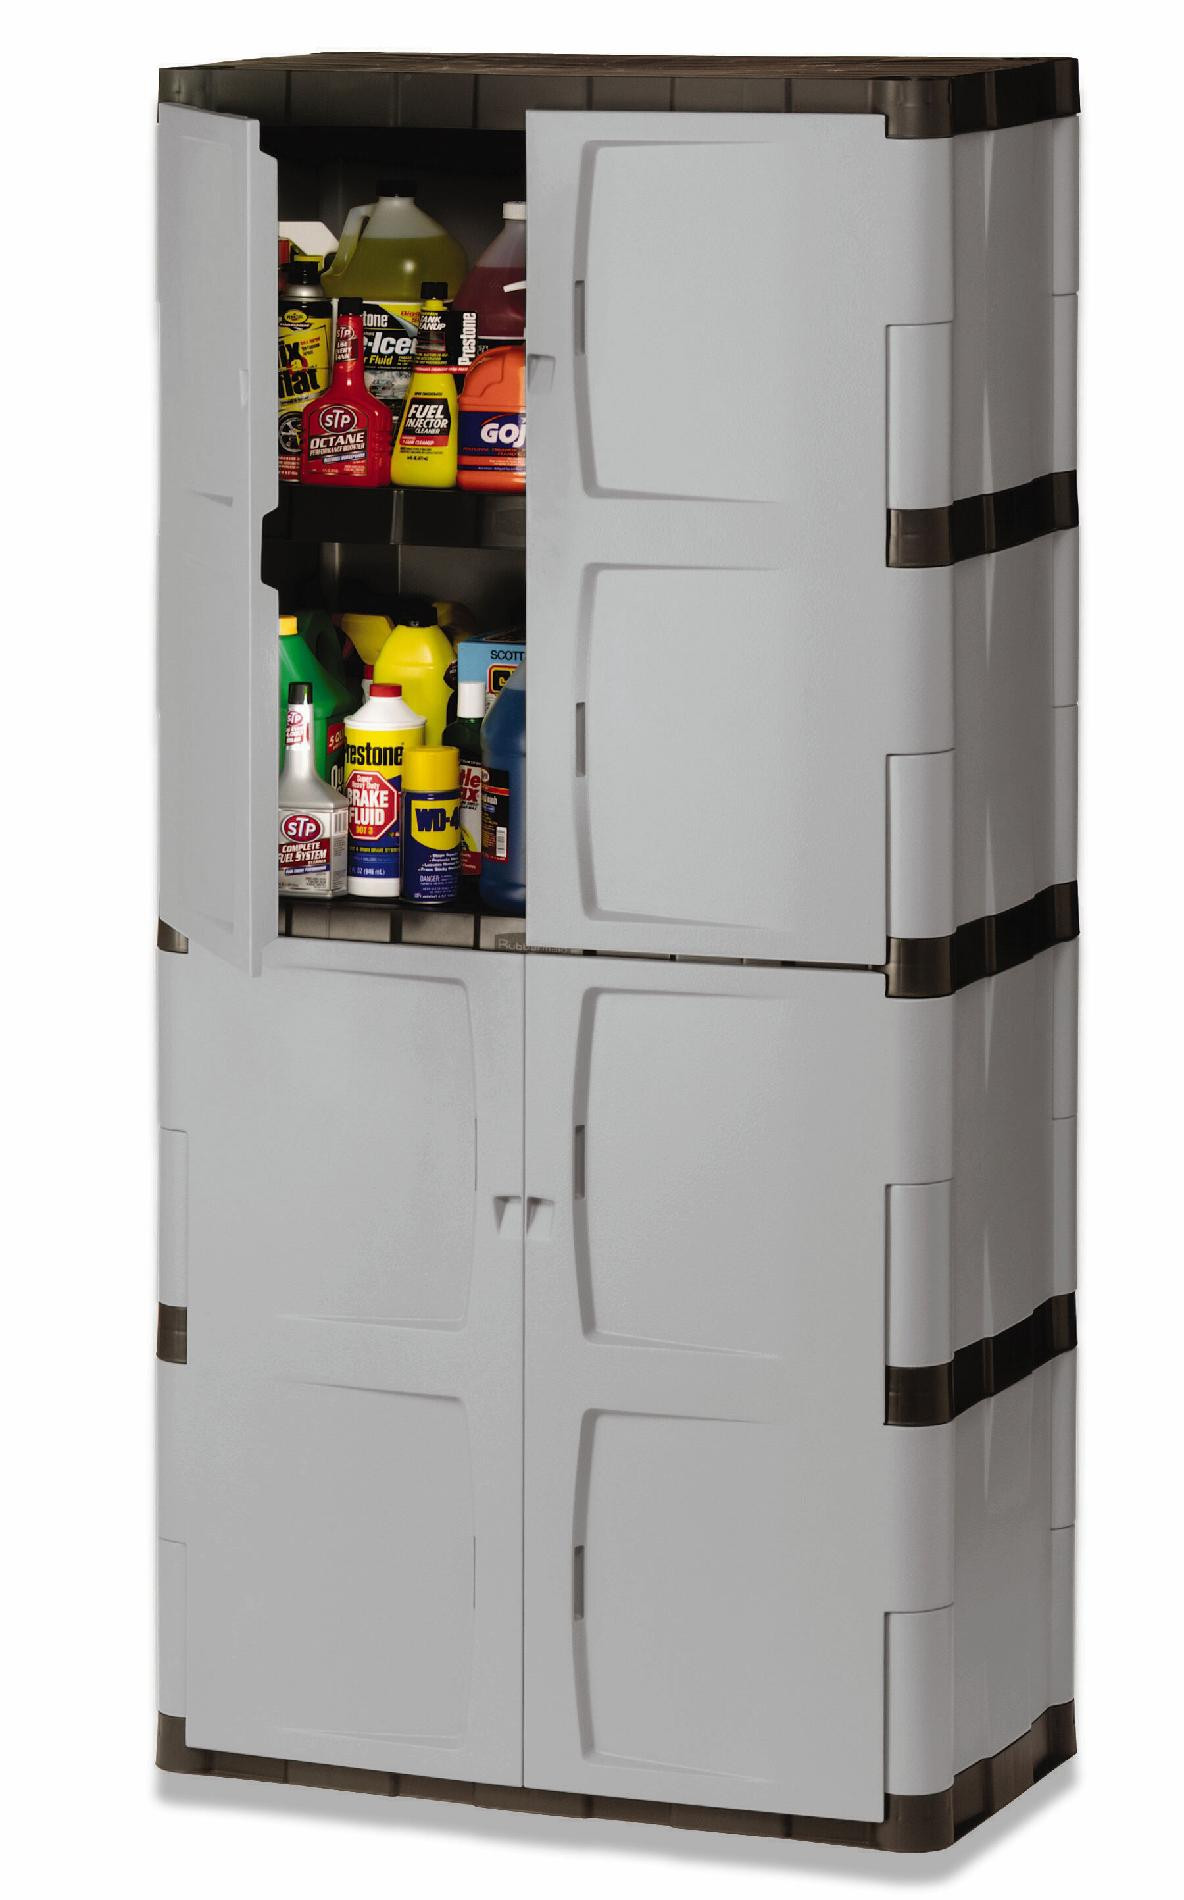 Best ideas about Rubbermaid Storage Cabinets . Save or Pin Rubbermaid FG MICHR Full Double Door Cabinet Now.